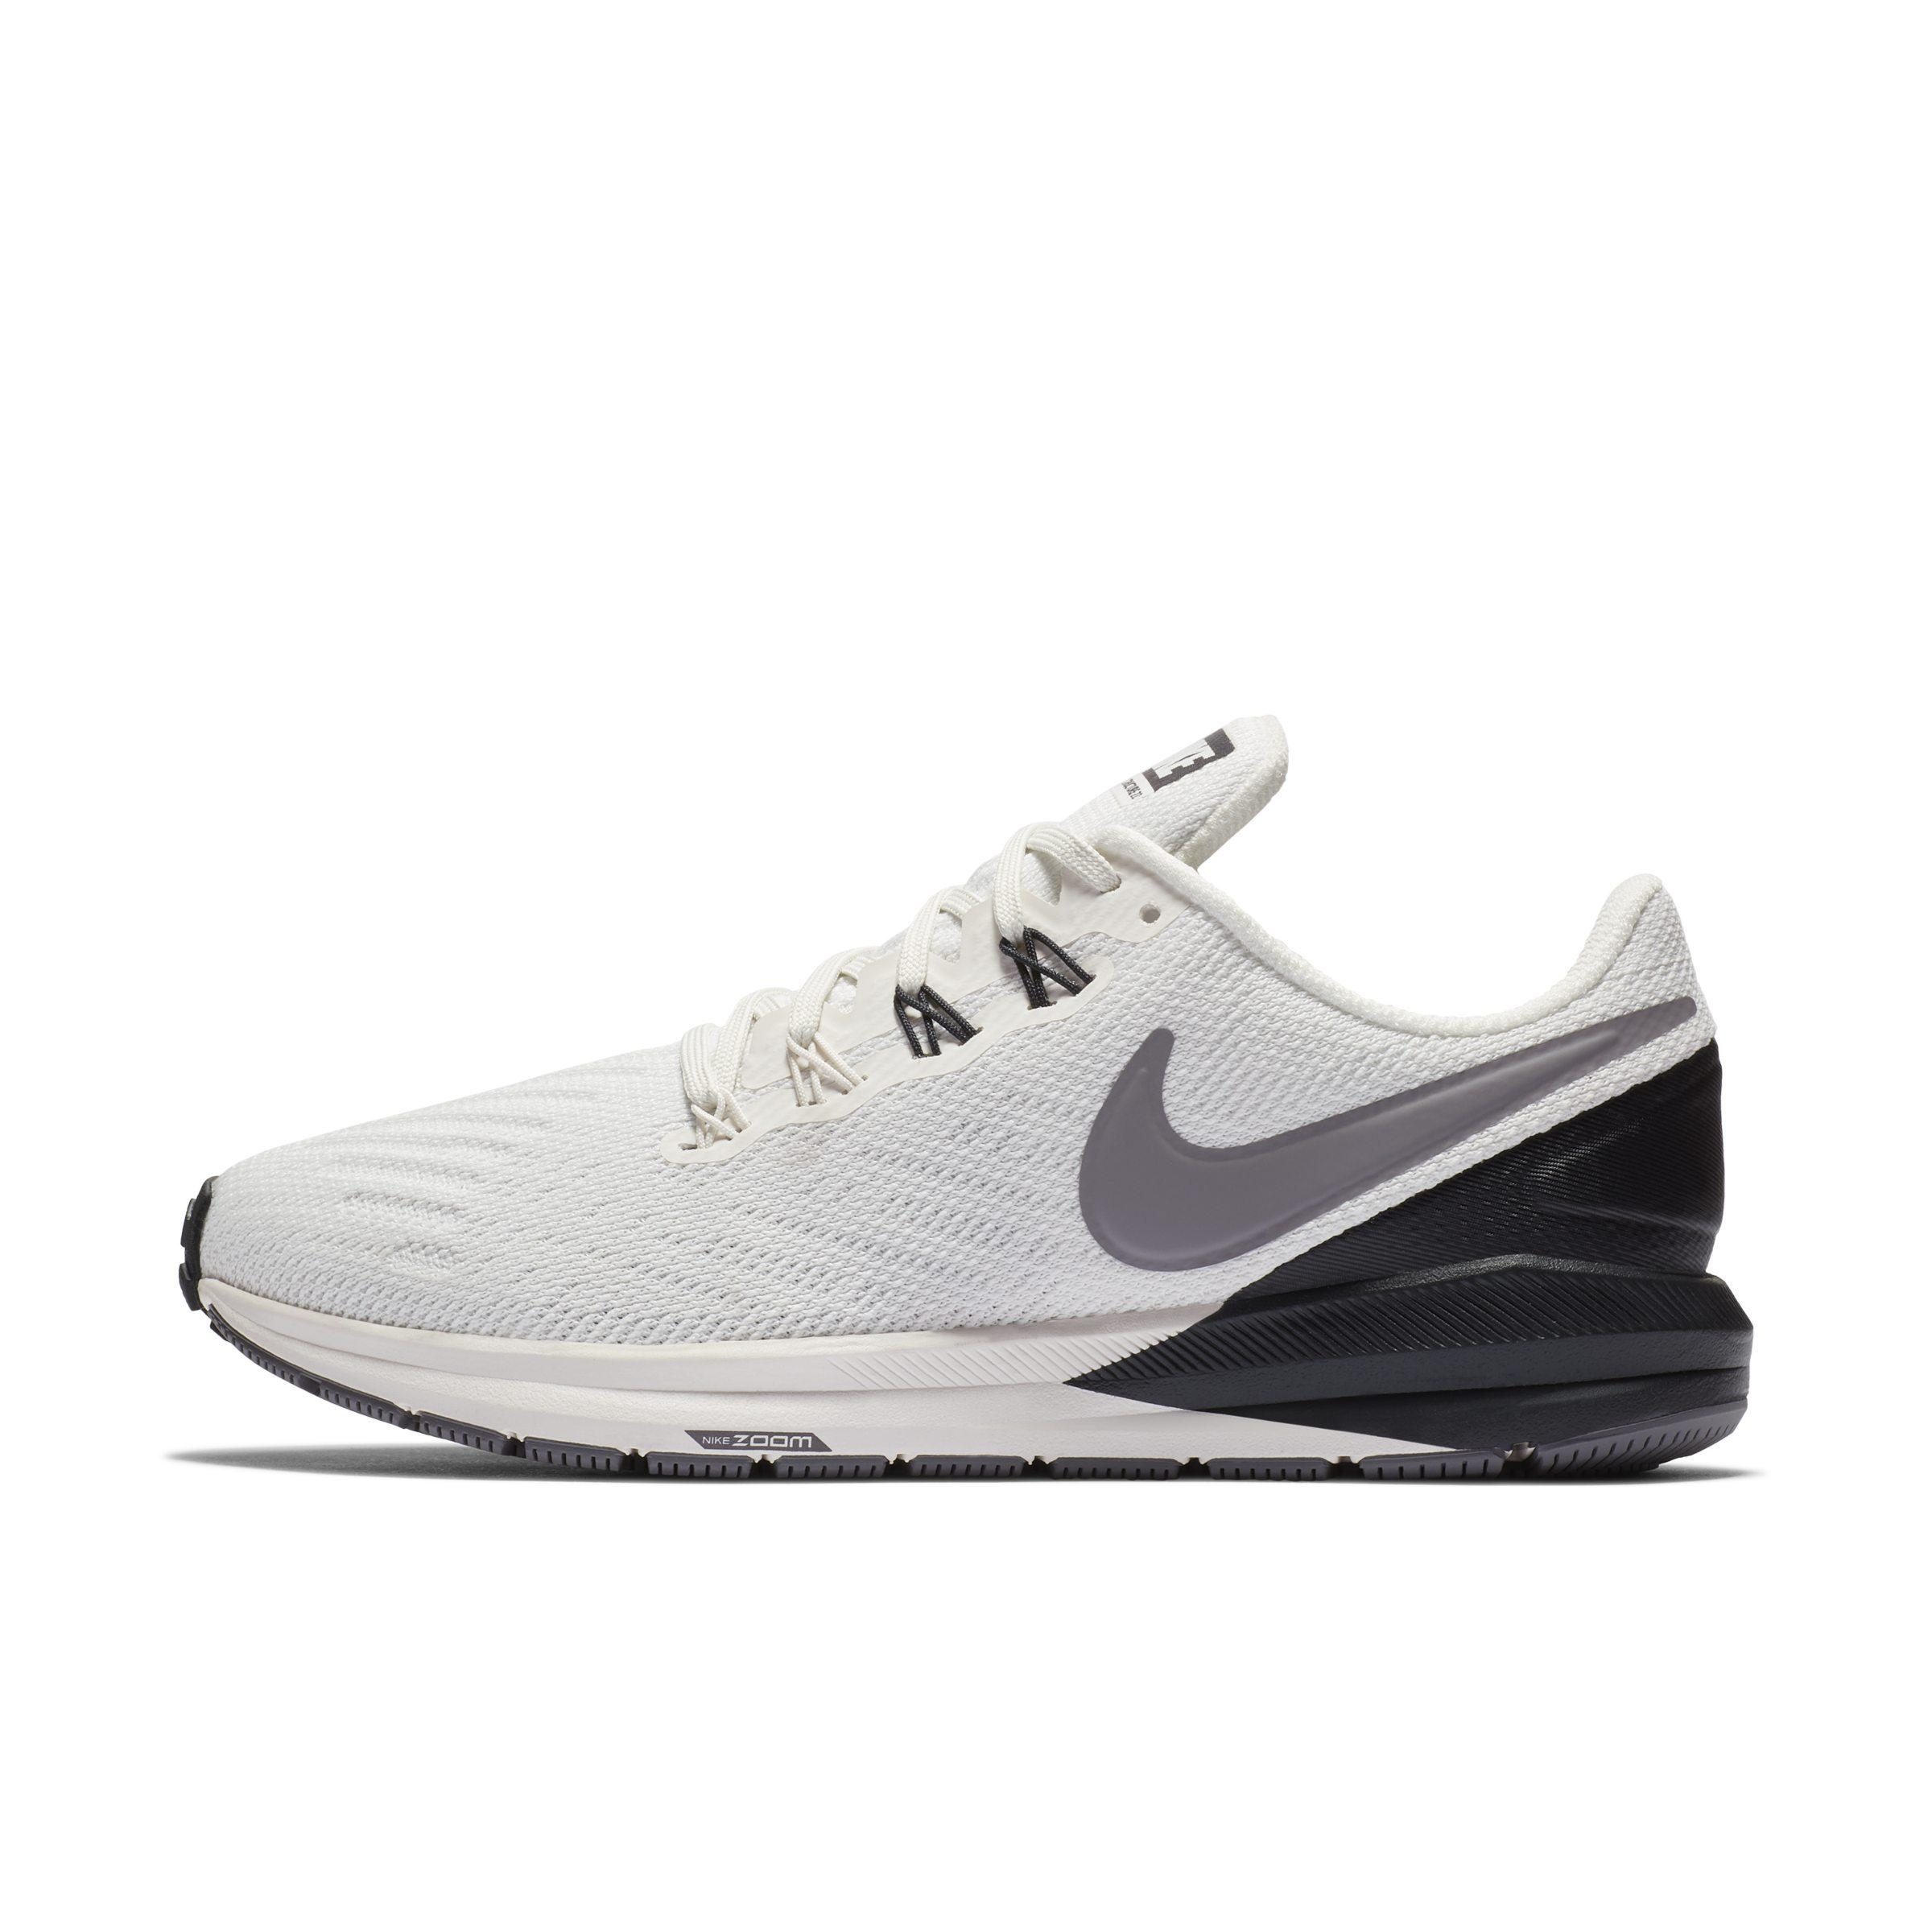 1fbab7f13bc Nike Air Zoom Structure 22 Running Shoe in White - Lyst